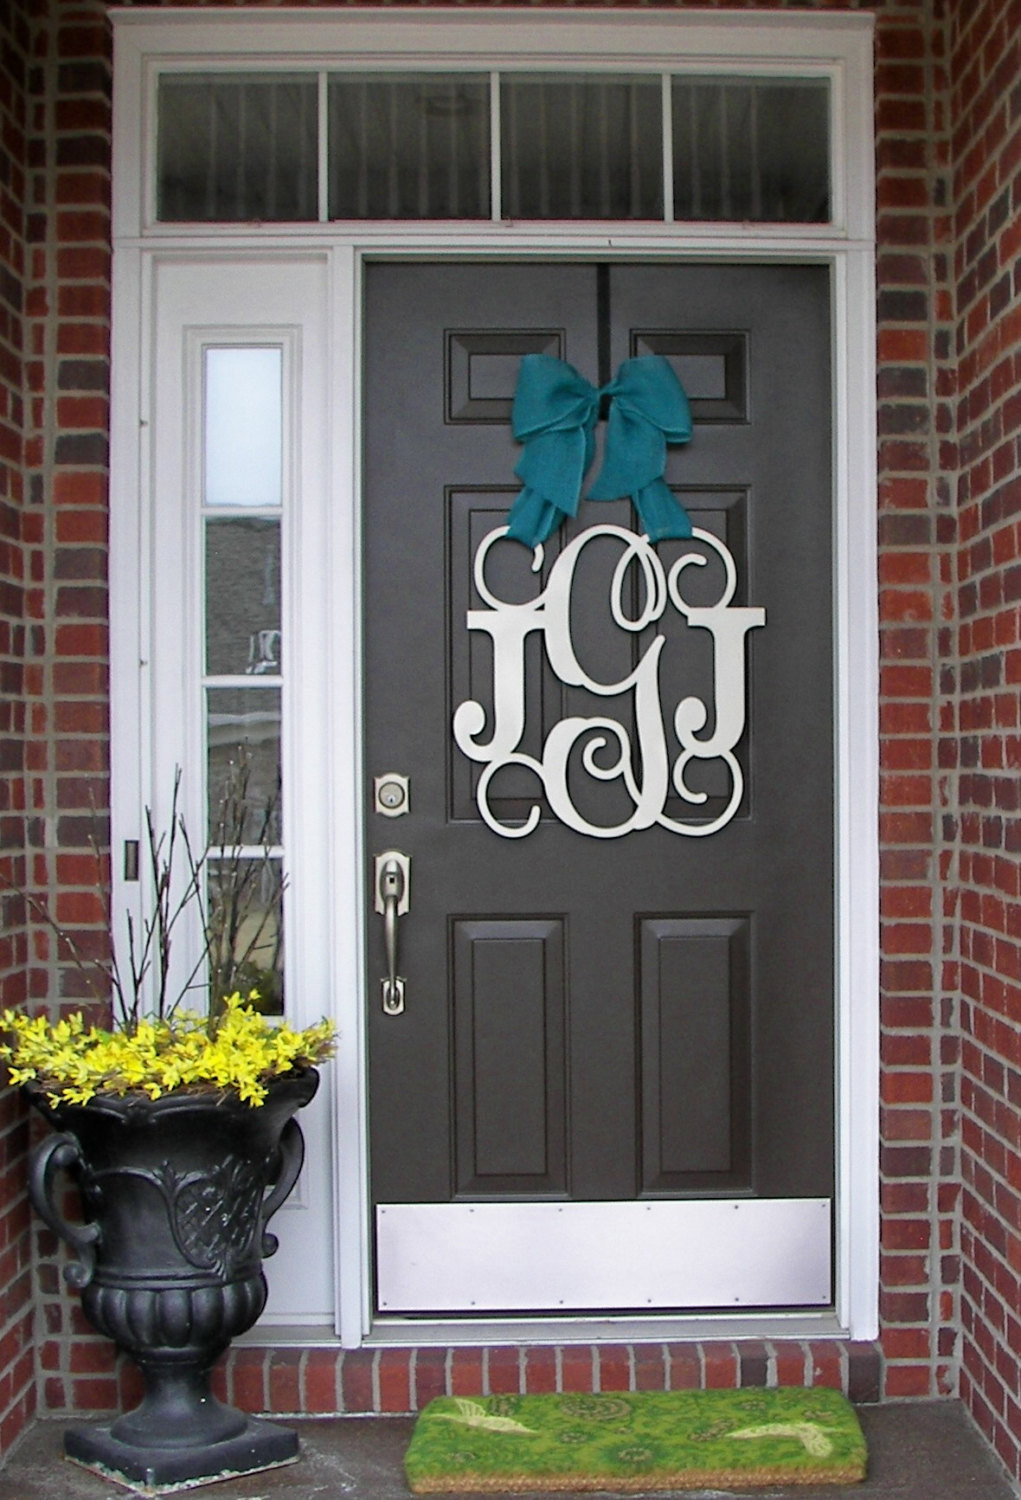 Unique Door Decoration Custom Monogram Door Hanger Burlap Bow House Warming Front